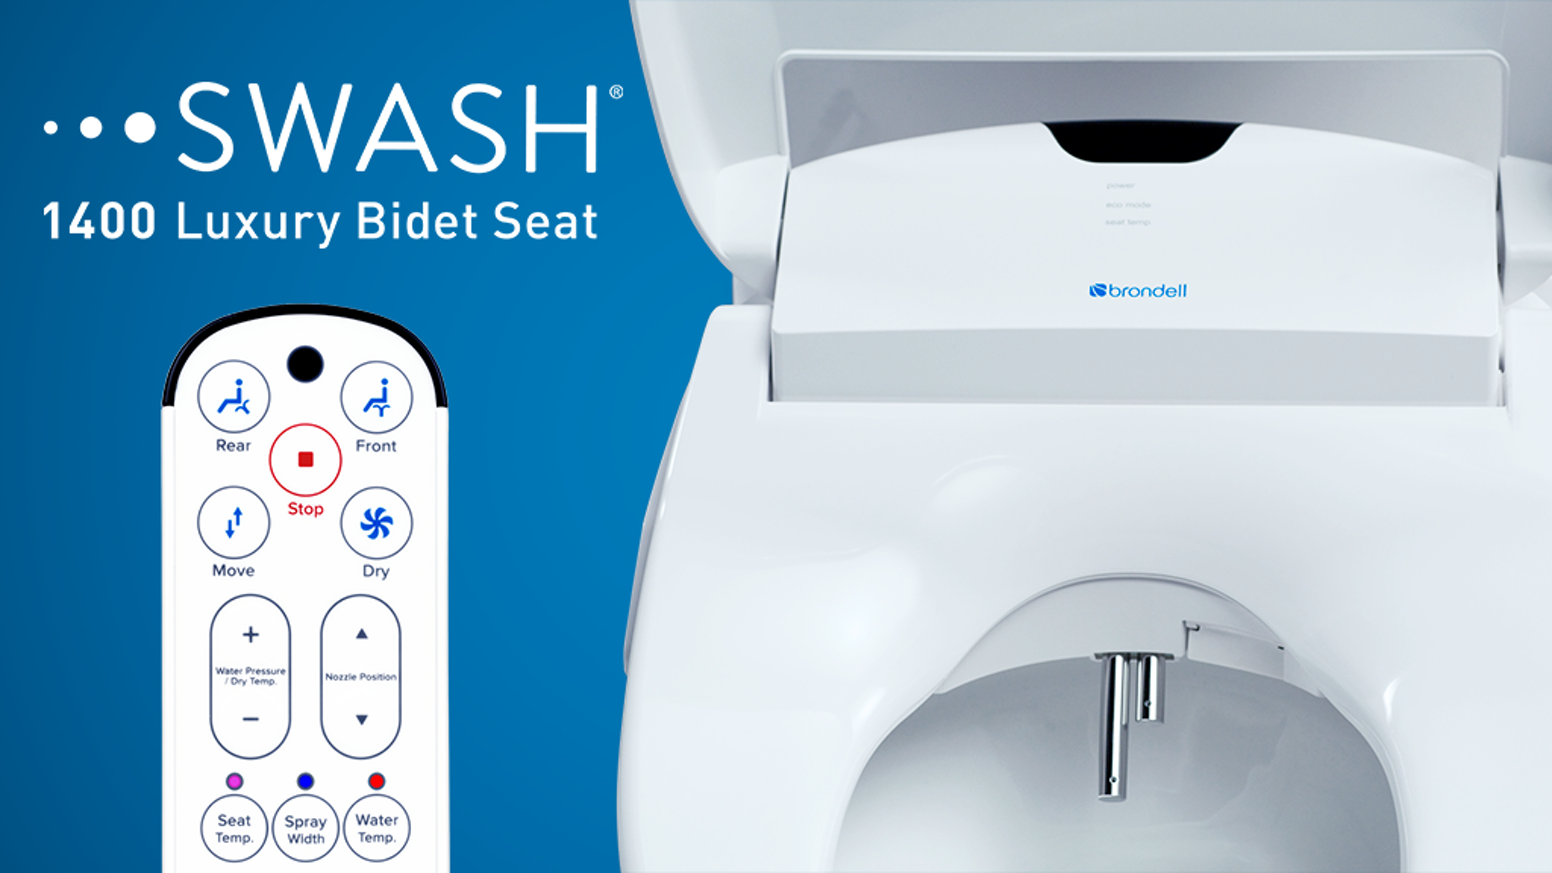 Using toilet paper is gross... stop smearing! Wash instead, with the Brondell Swash bidet seat. Join the #washdontwipe revolution!